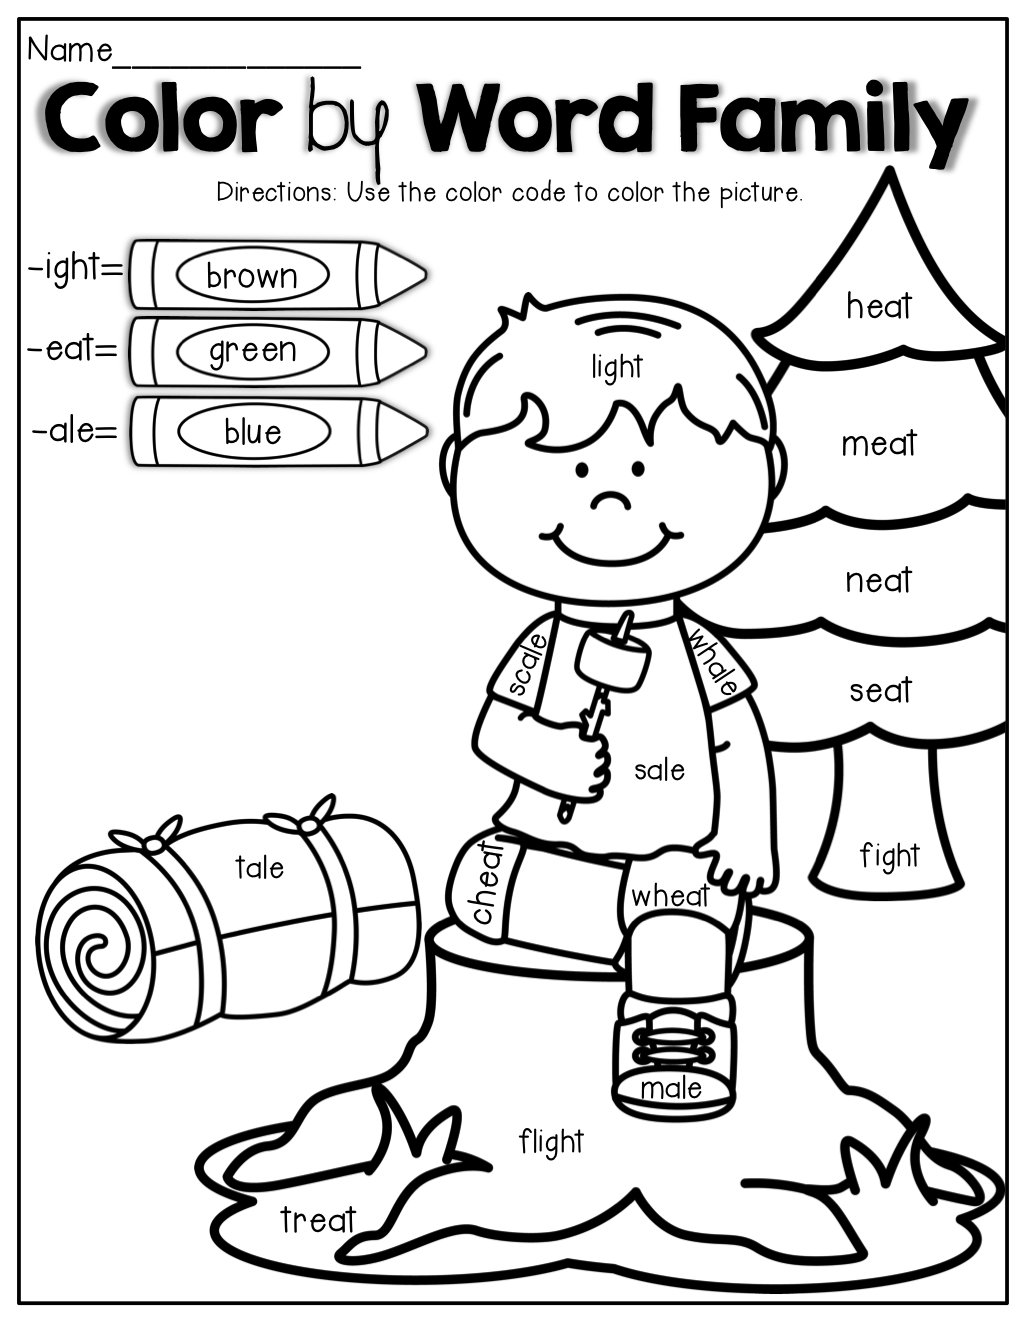 worksheet Ap Word Family Worksheets since kids love to color this is a great way make learning fun fine motor id sight word concept staying on task requires strong hand muscles and about grade reading skill